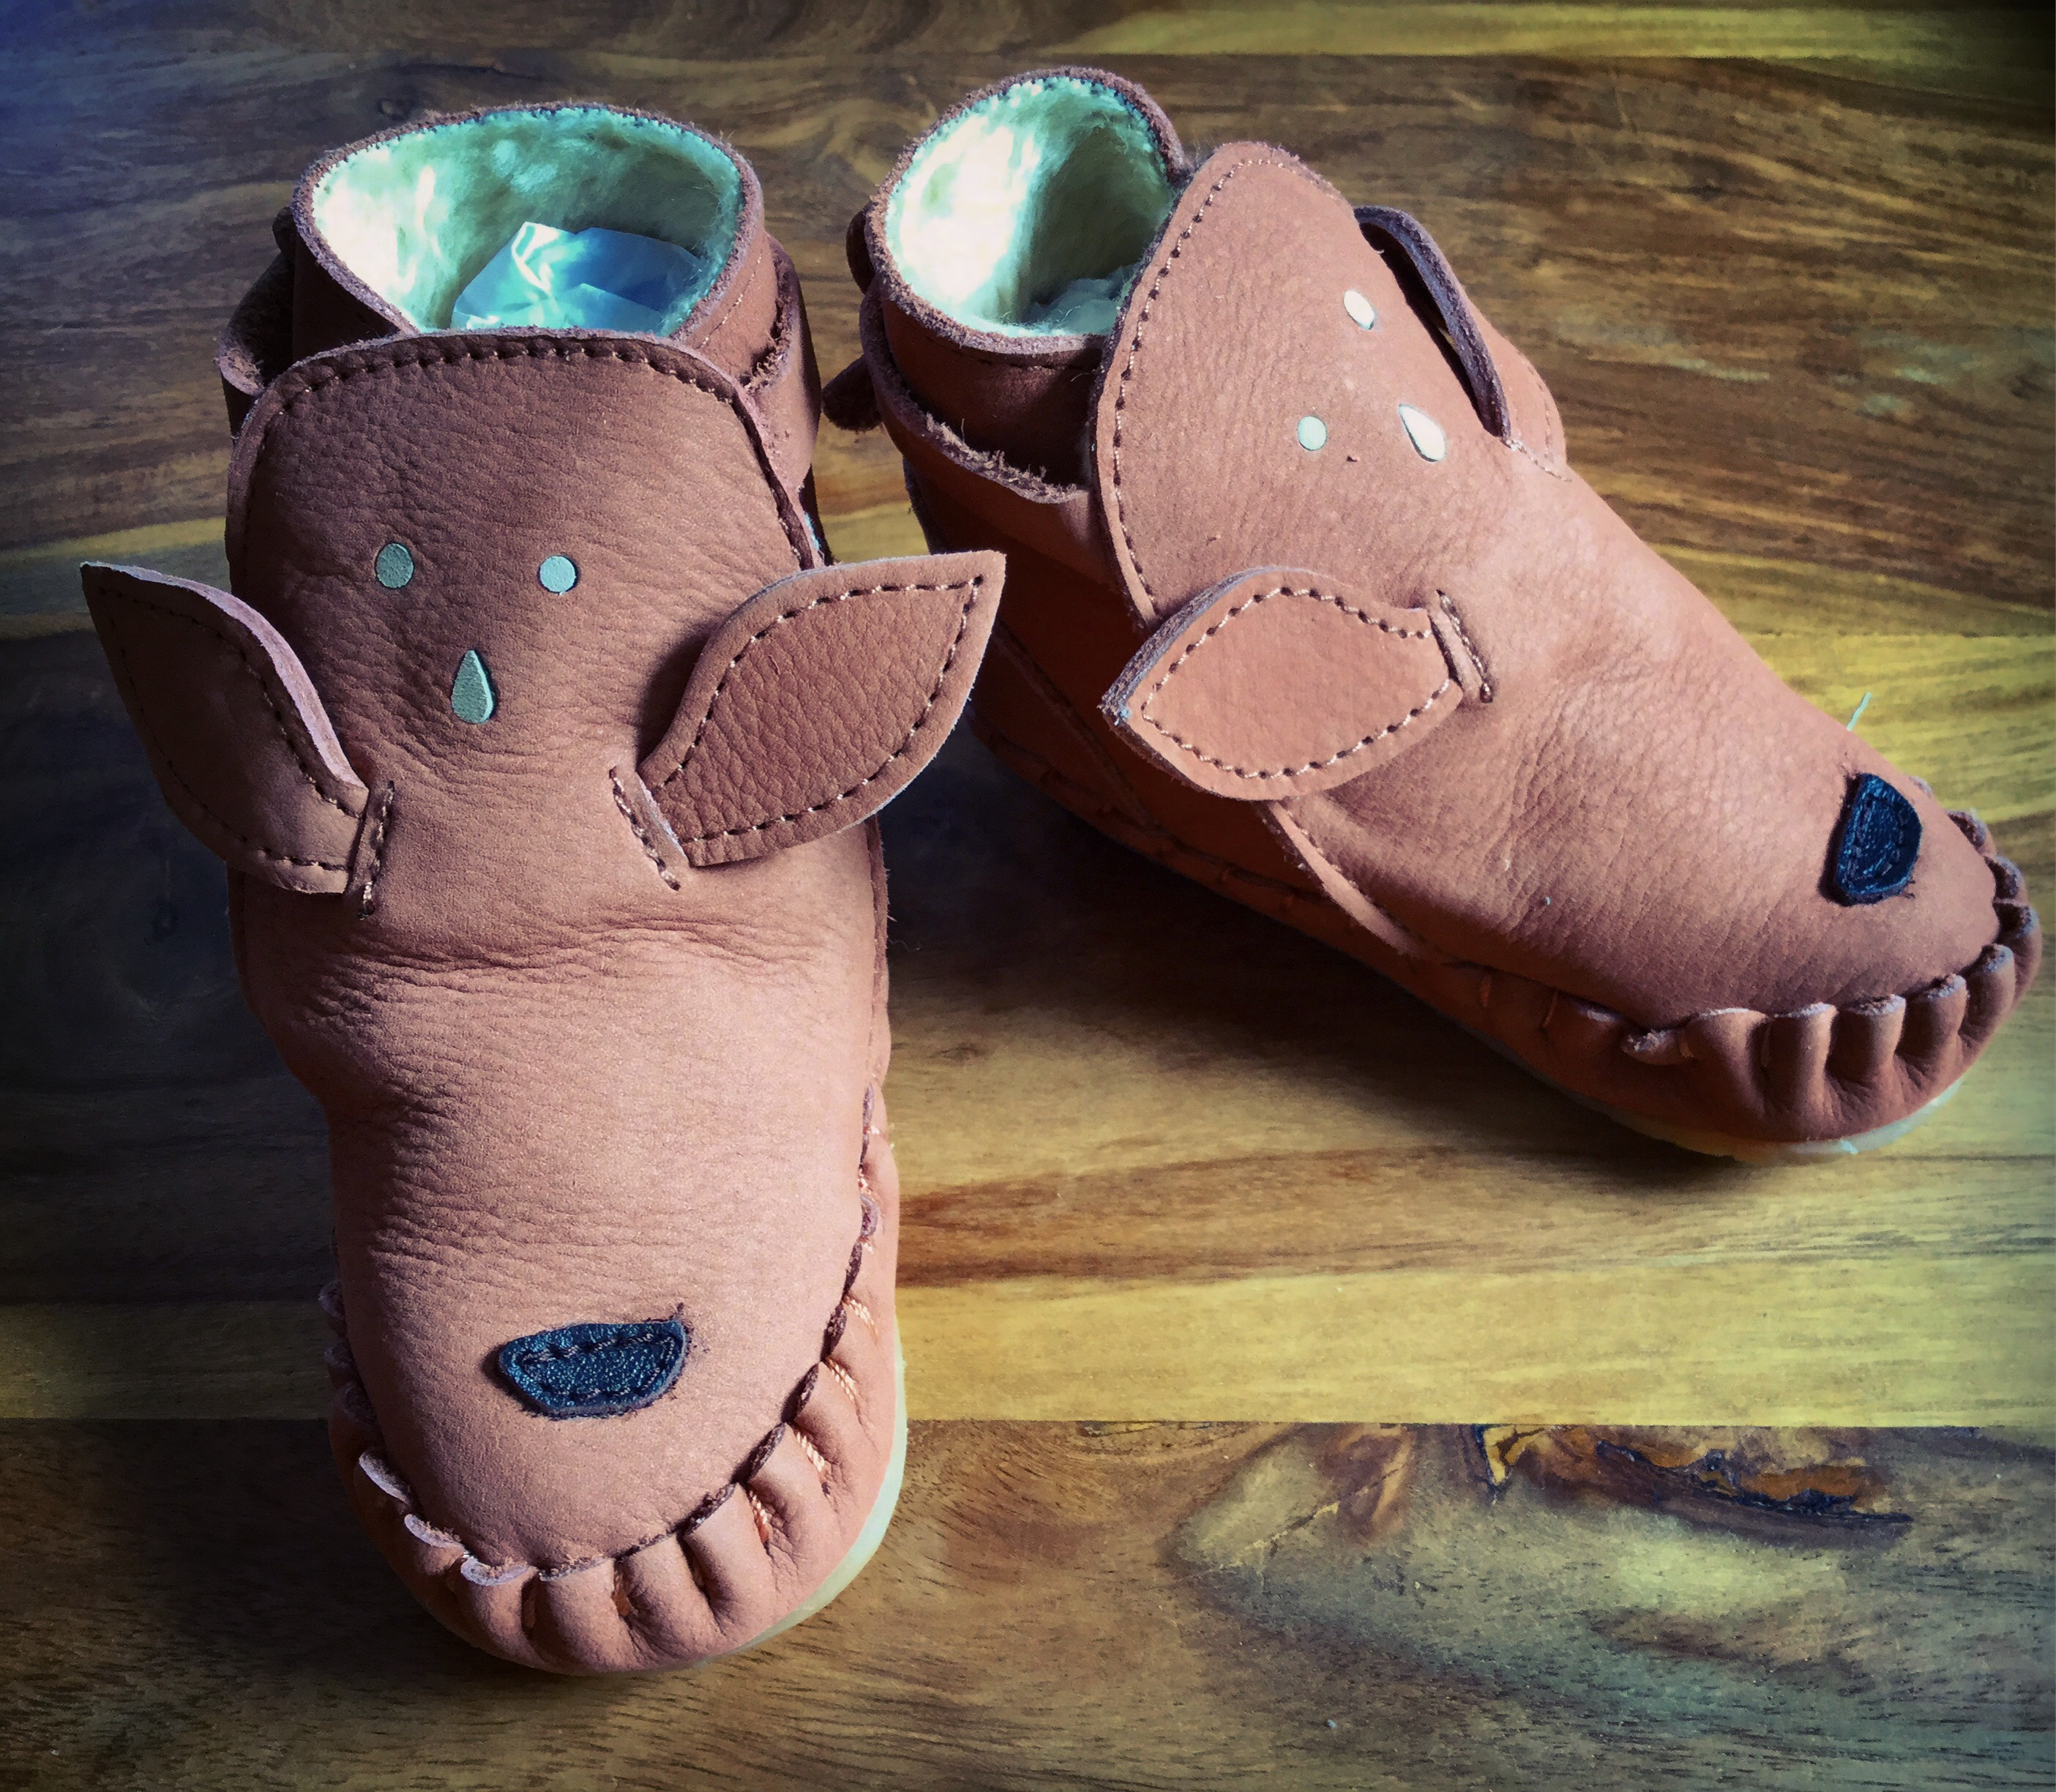 Donsje Amsterdam Leather Shoes and Accessories for Children